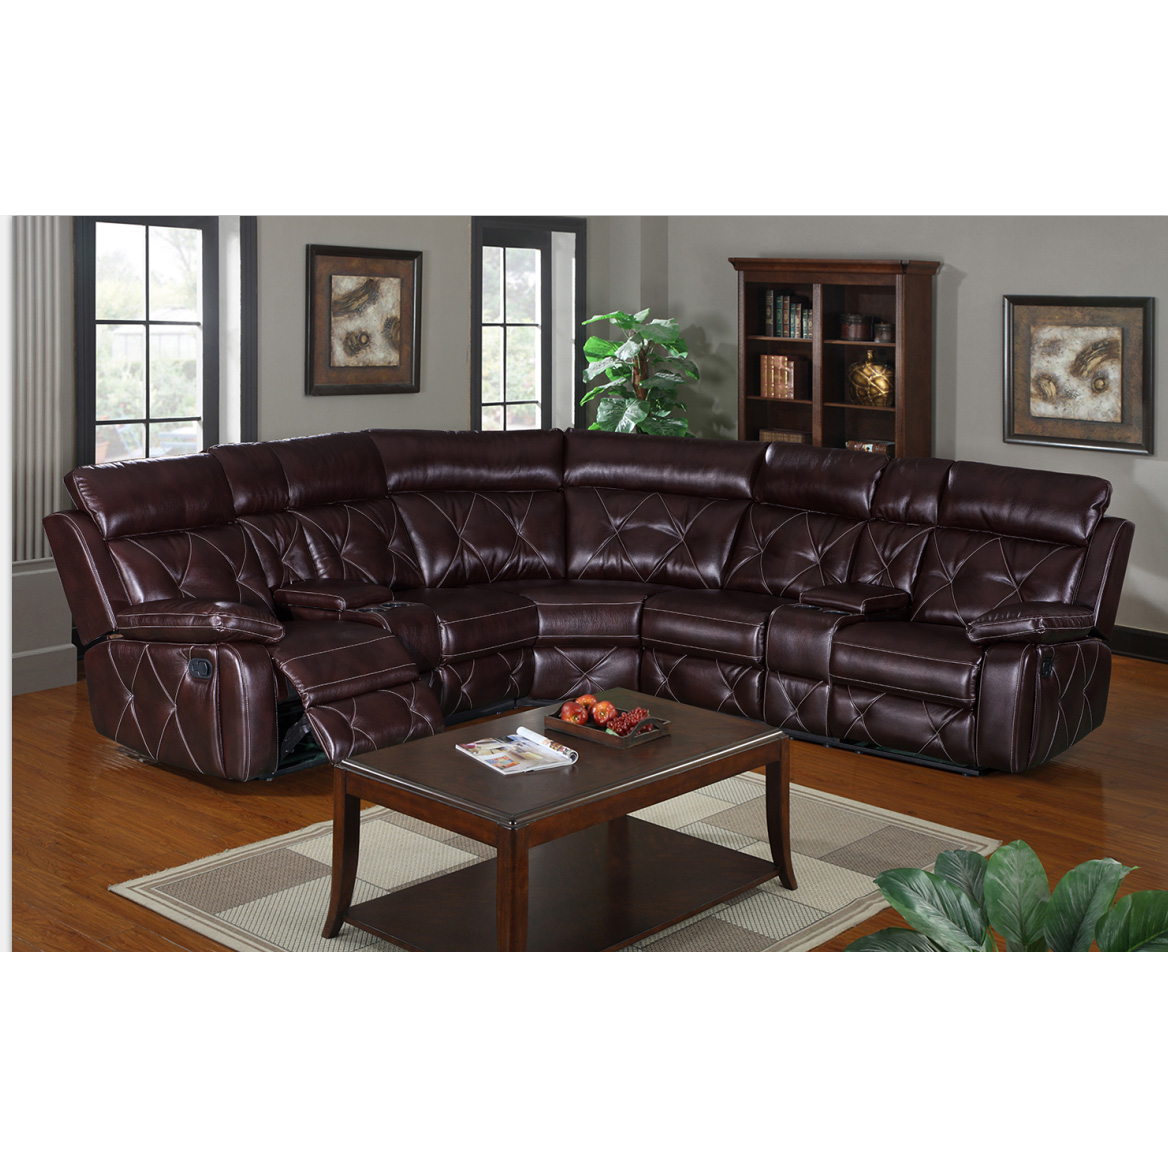 China Supplier European Style Living Room Leather Sectional Recliner Sofa -  Buy Sectional,Sectional Couch,U Shape Sectional Sofa Product on ...